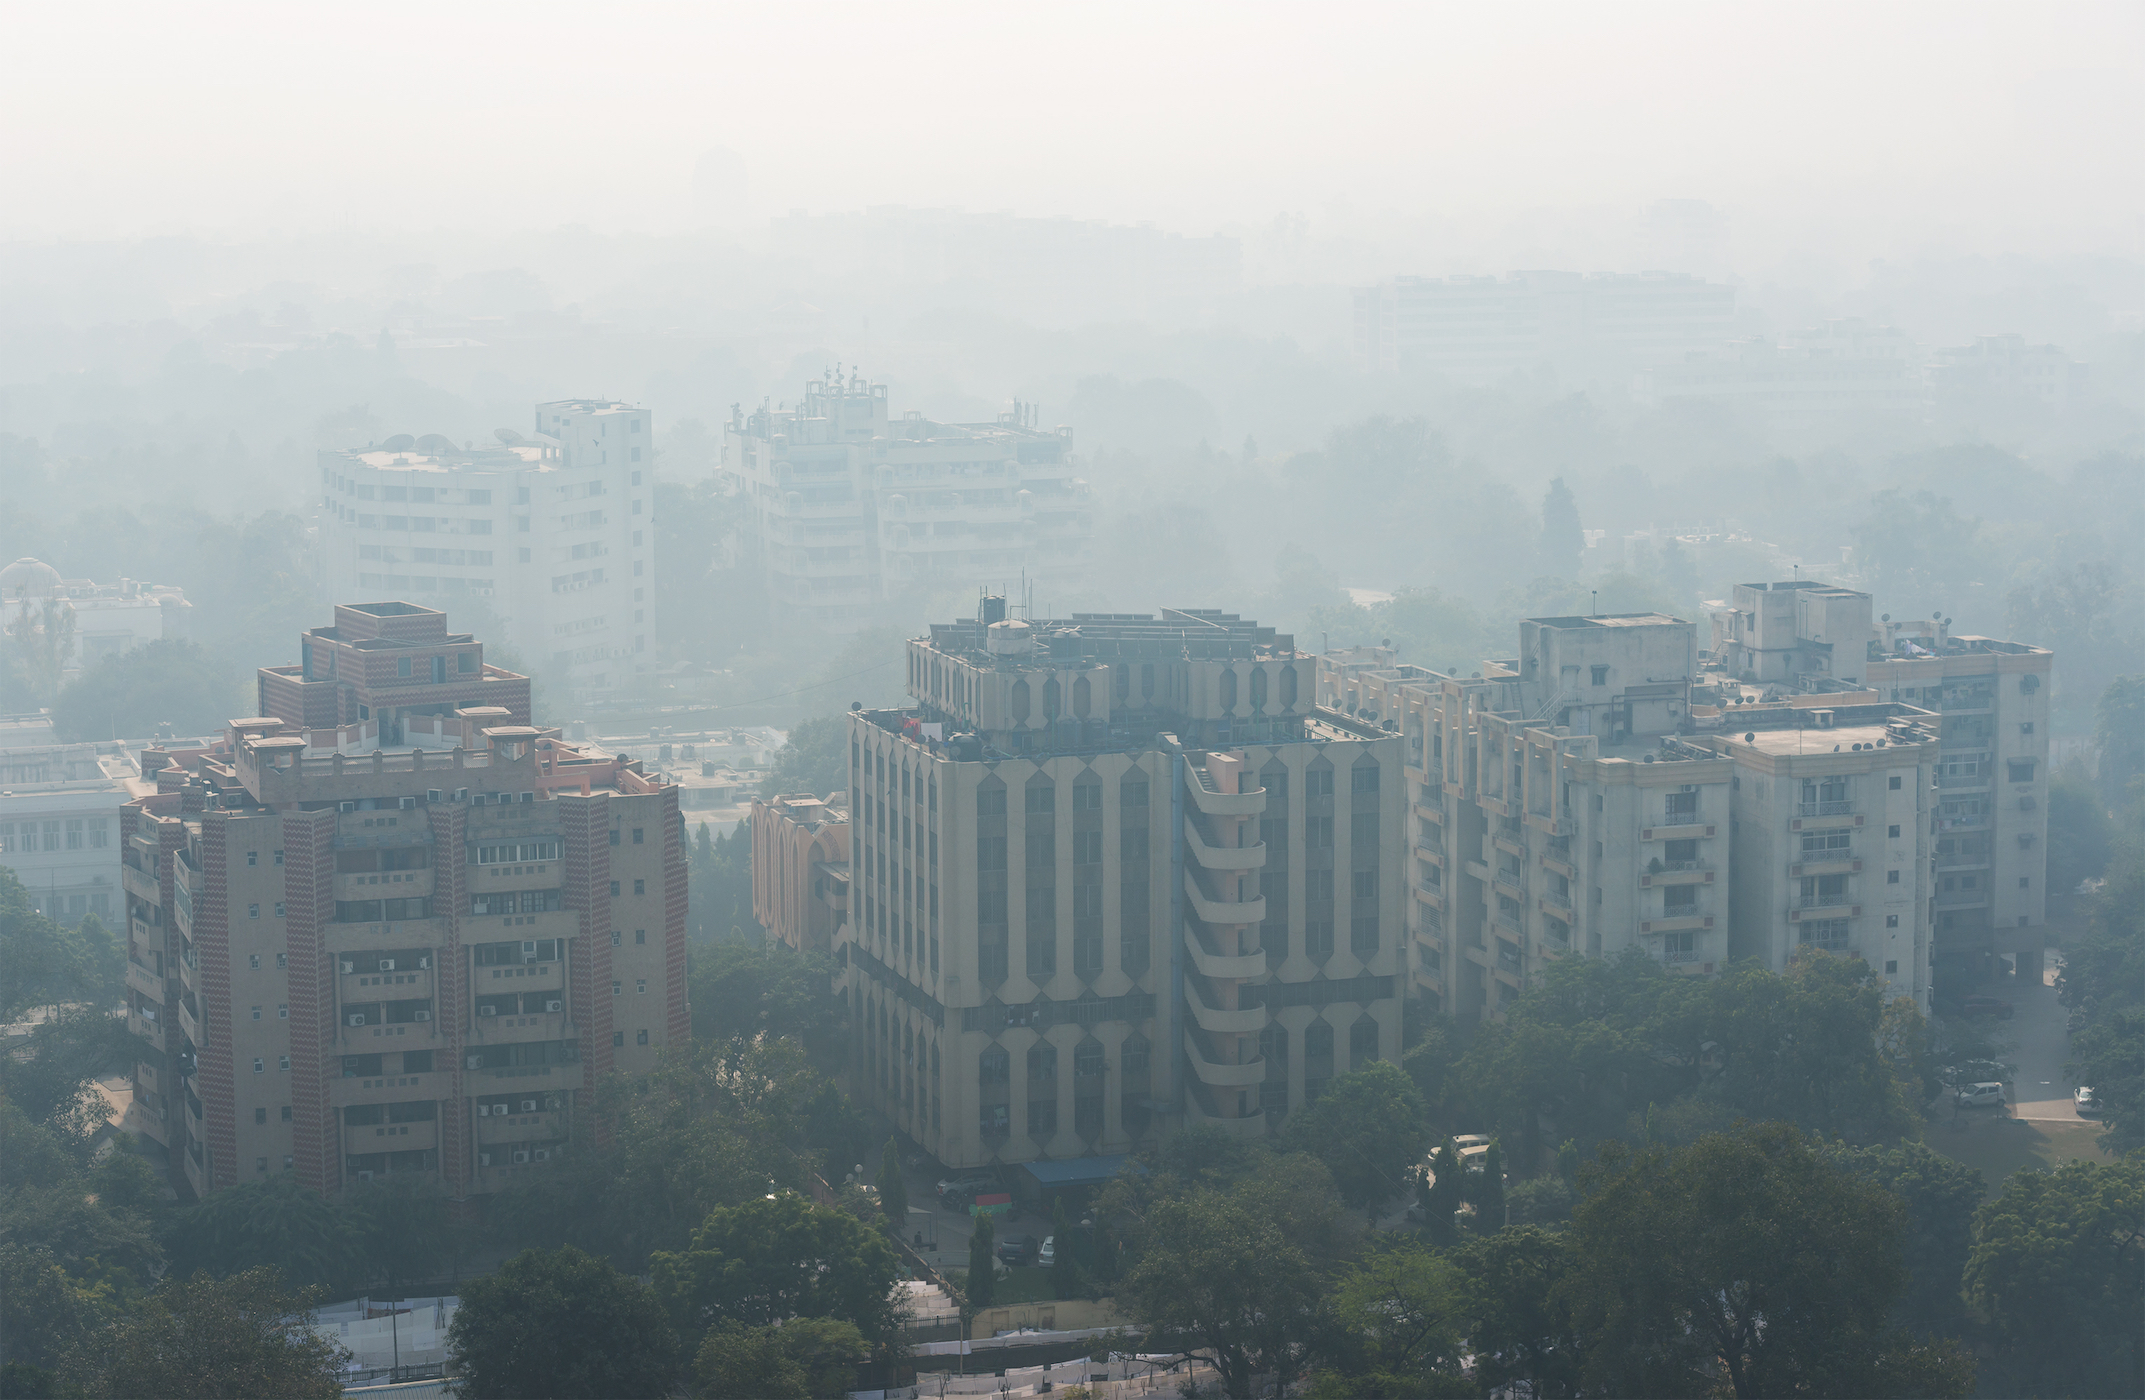 A new study has found that sulfur dioxide emissions have dropped by 75 percent in China, but increased by 50 percent in India.